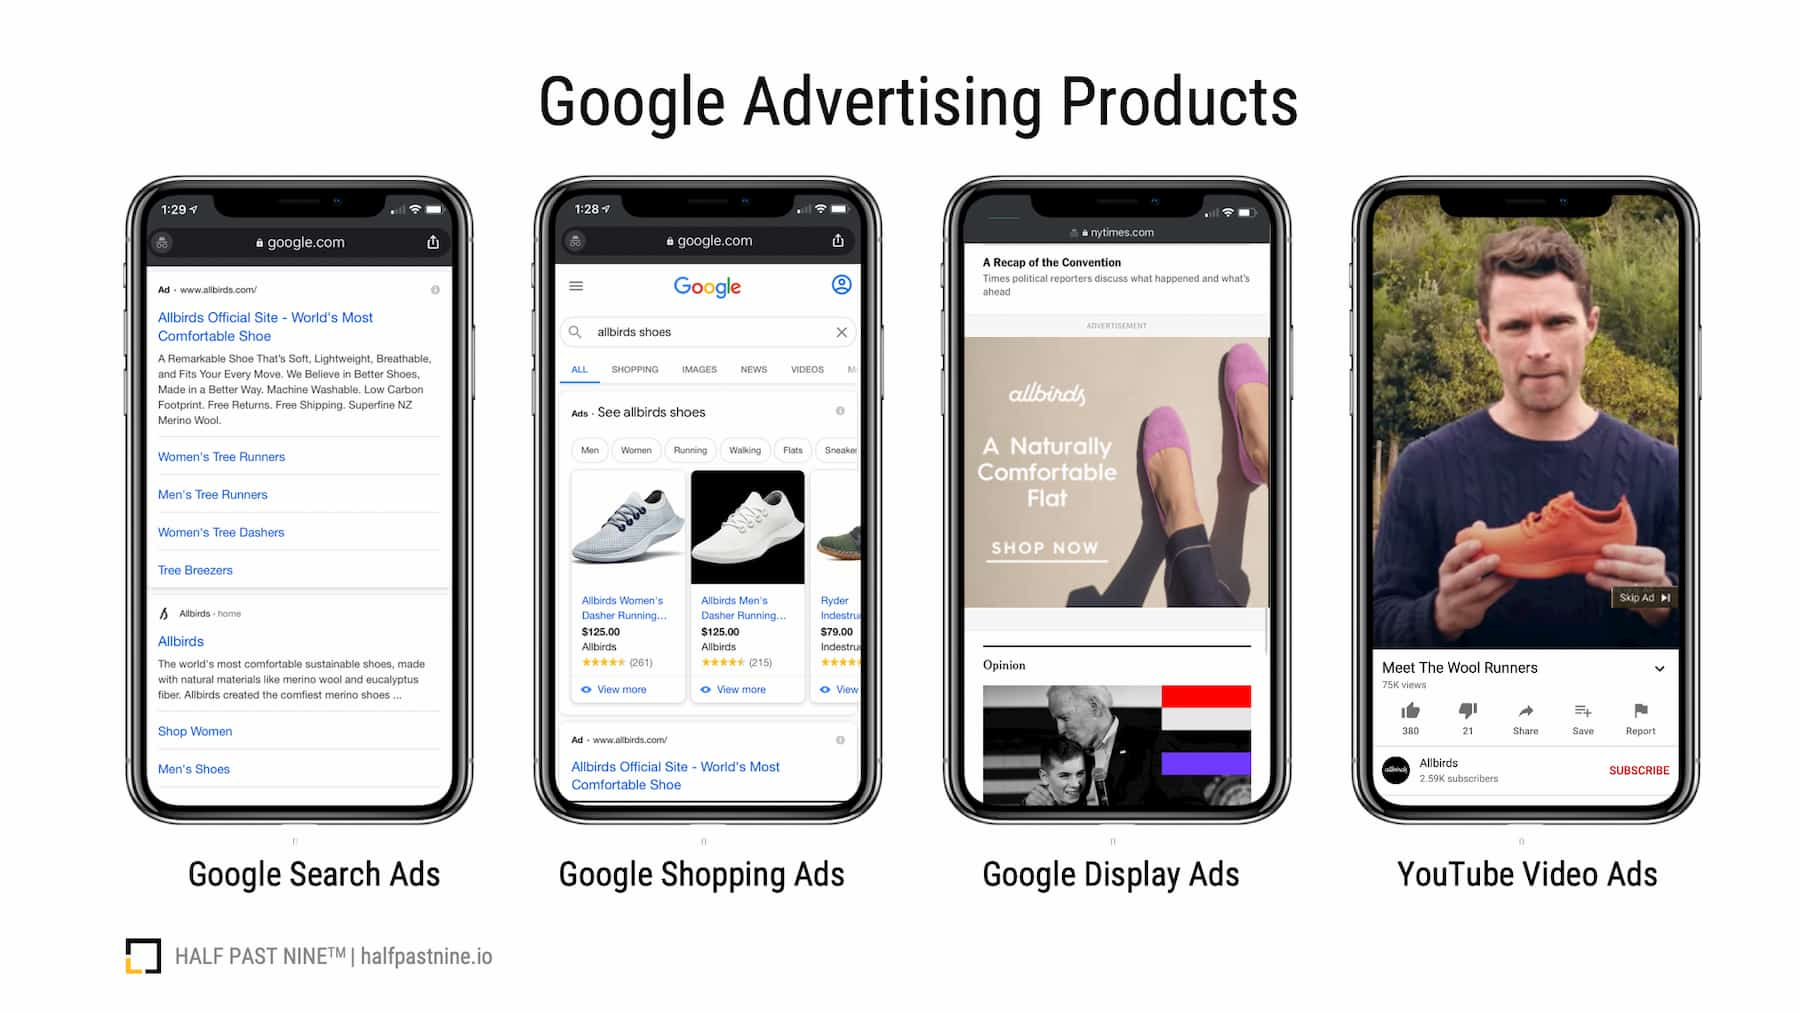 An infographic showing the four types of Google advertising products, search ads, shopping ads, display ads, and youtube video ads.